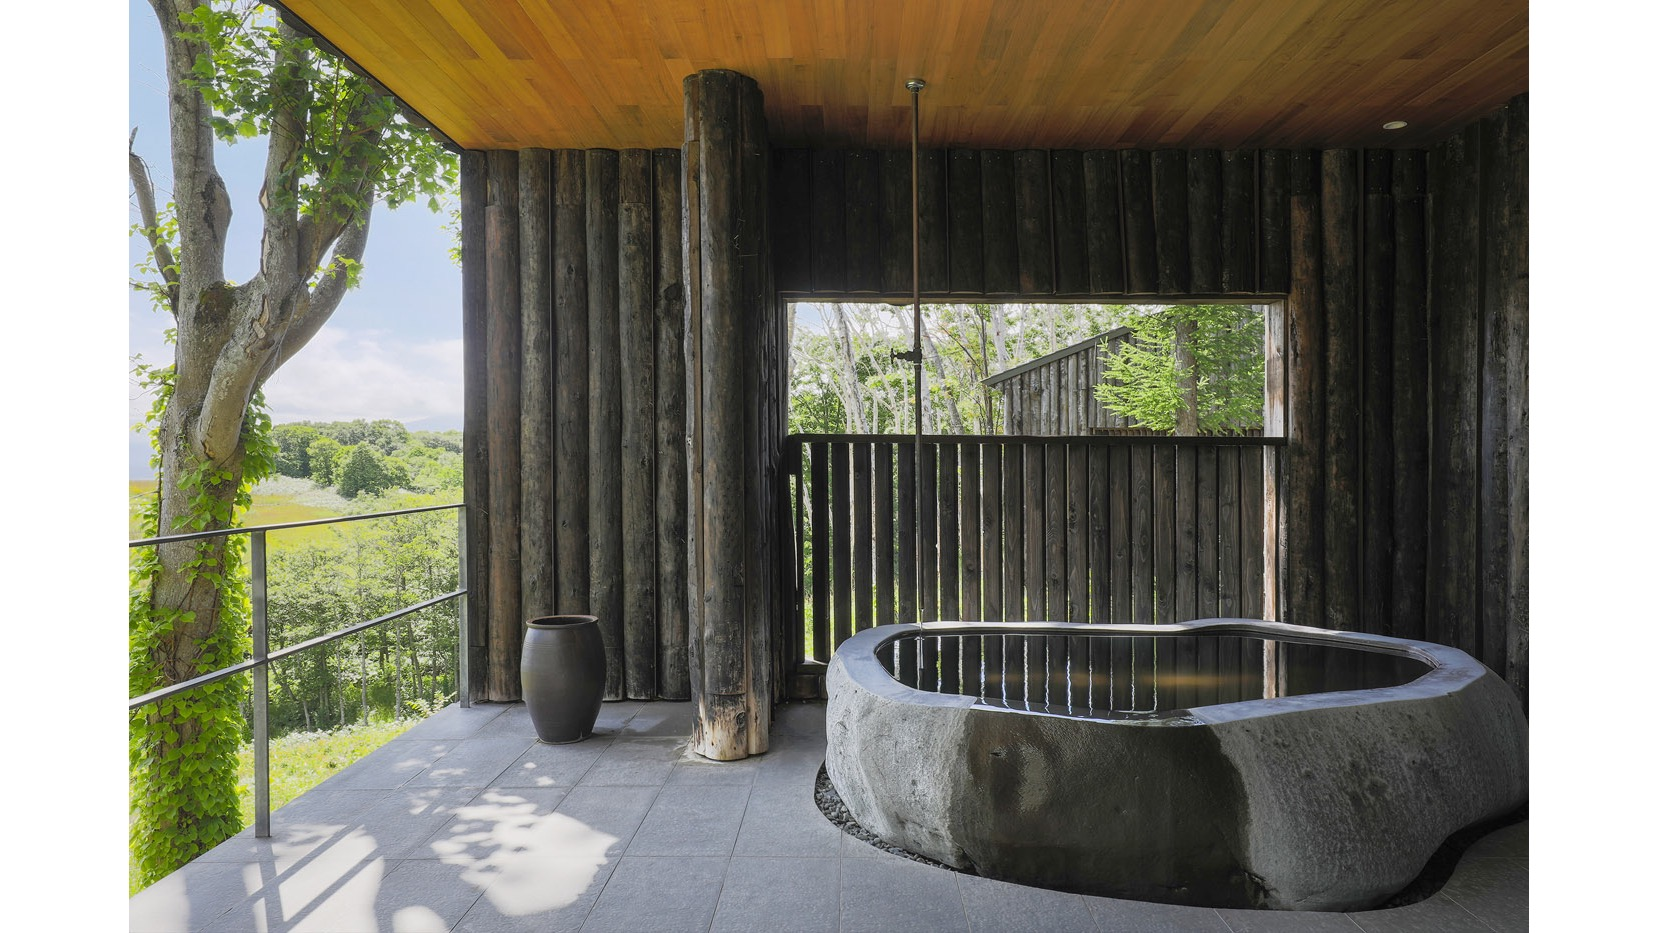 Every room features a private outdoor bath.